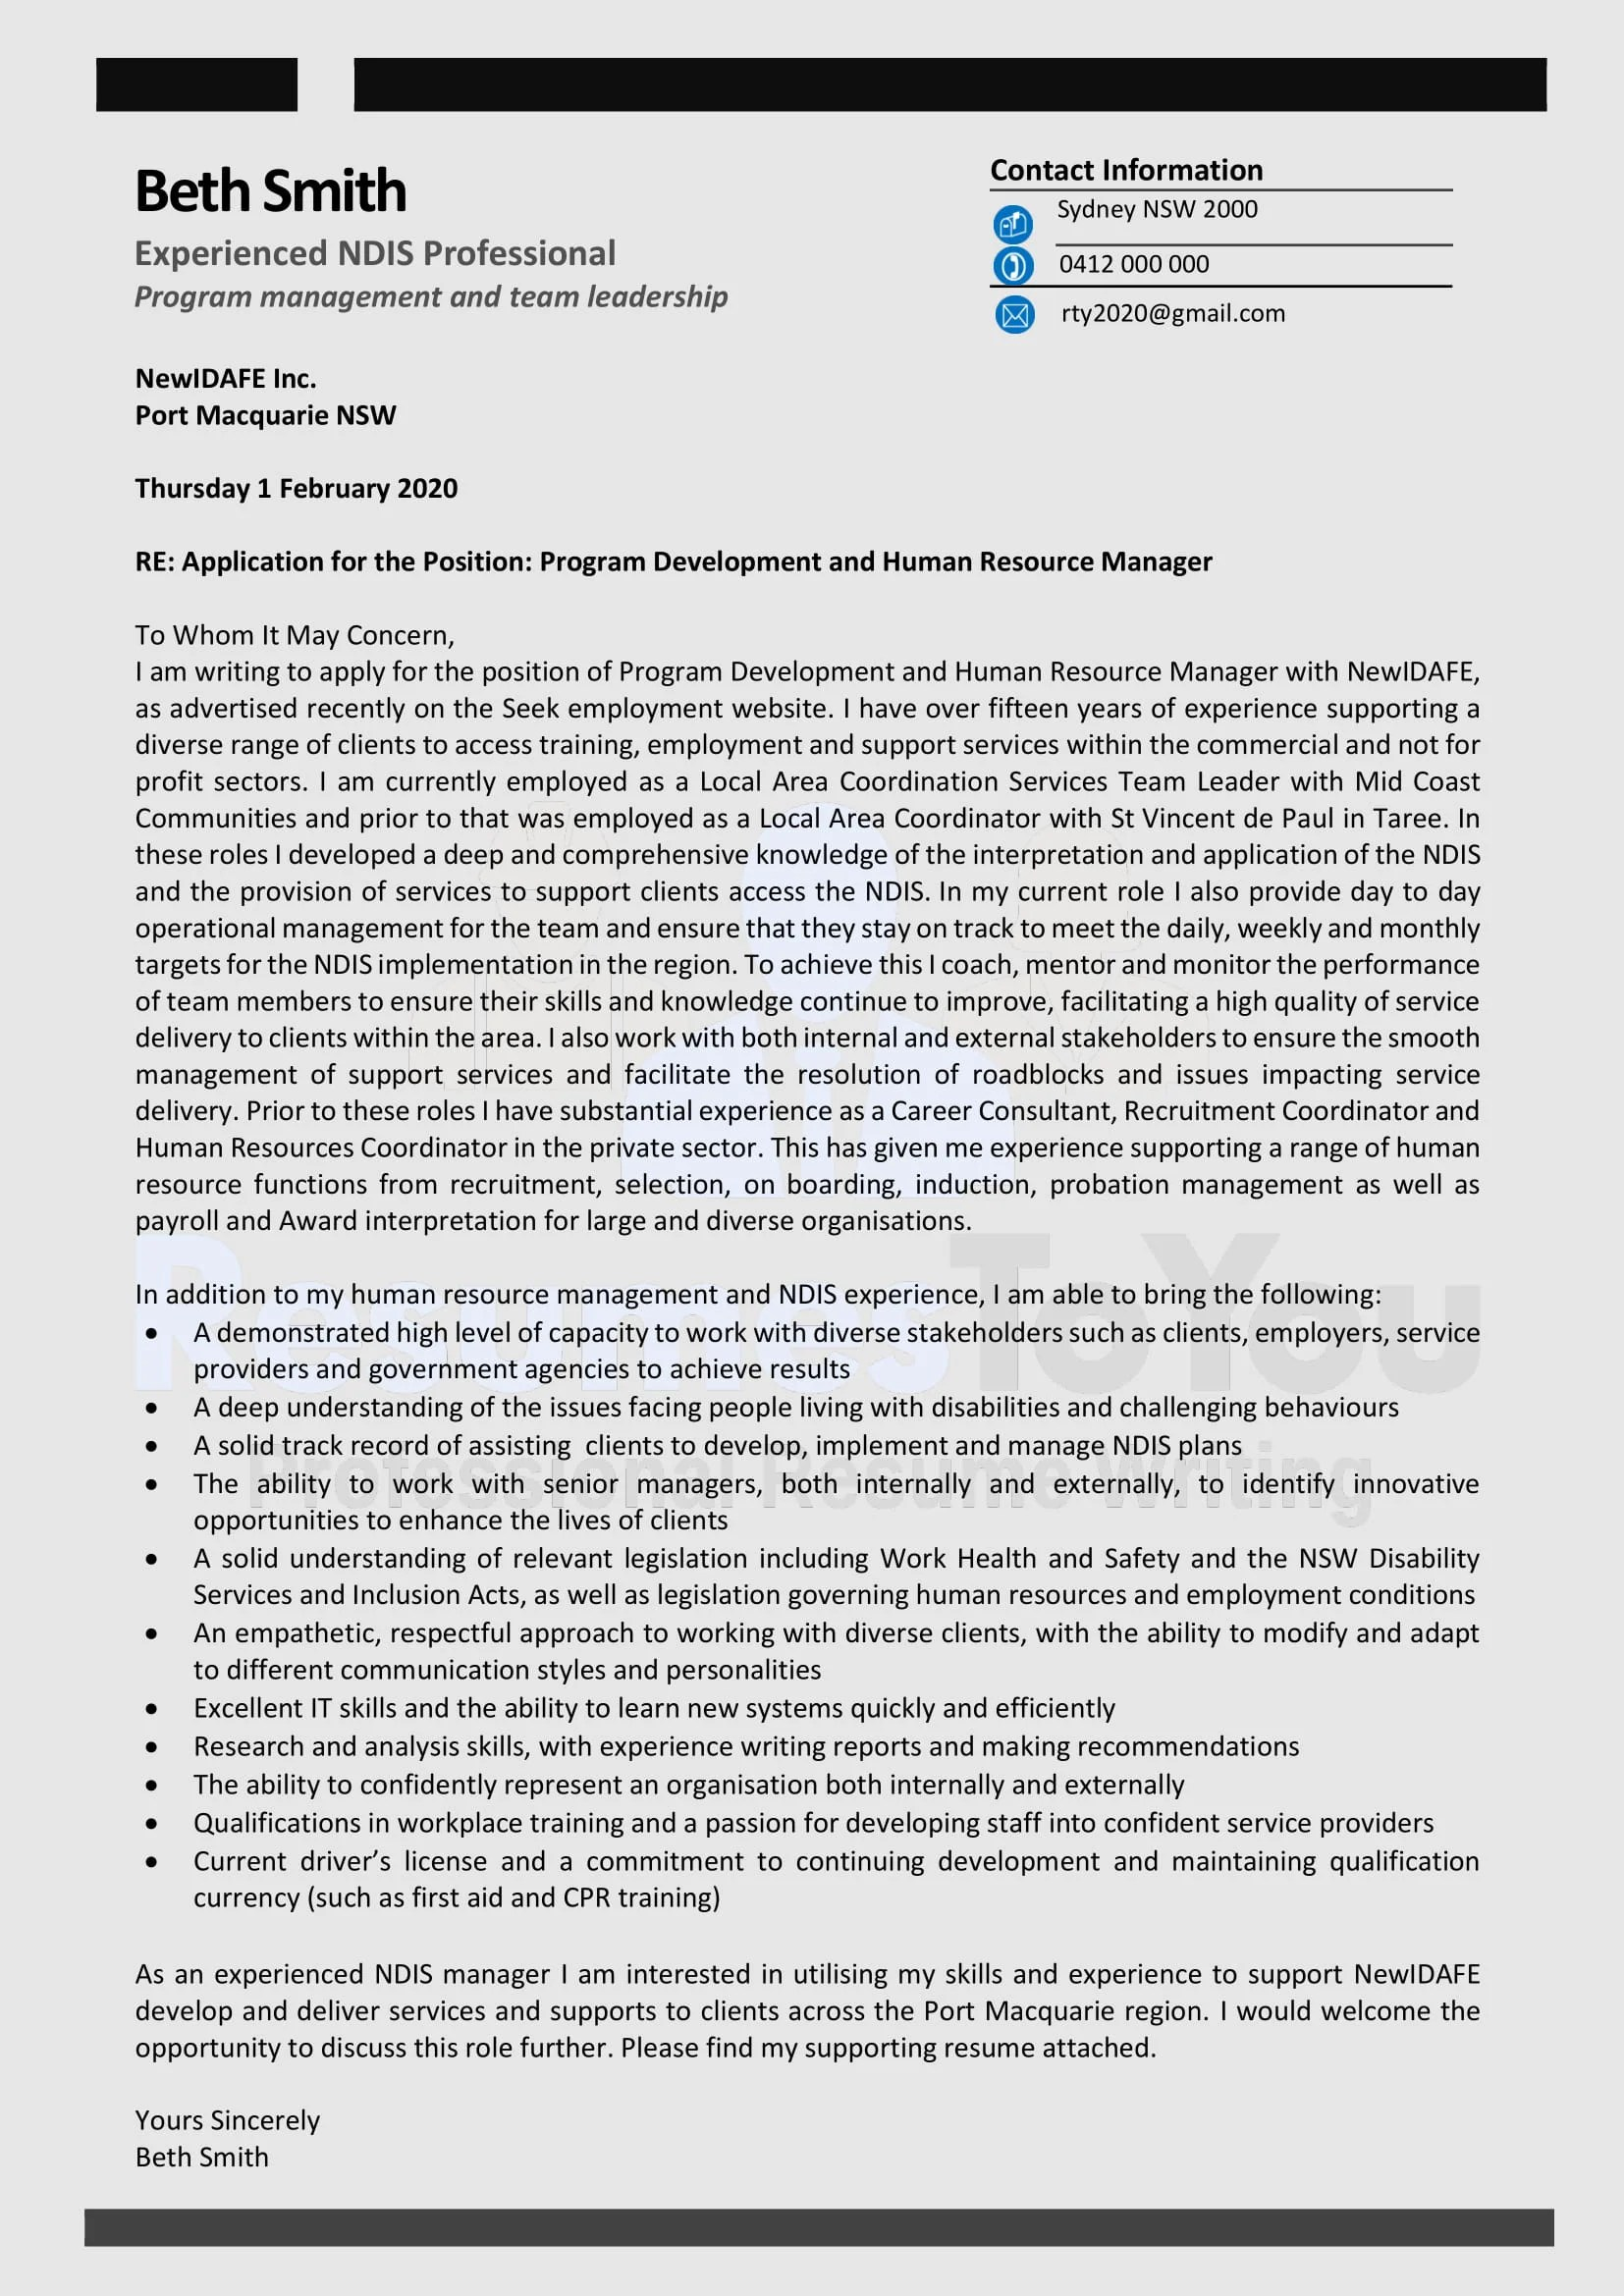 Tailored Cover Letter-sample